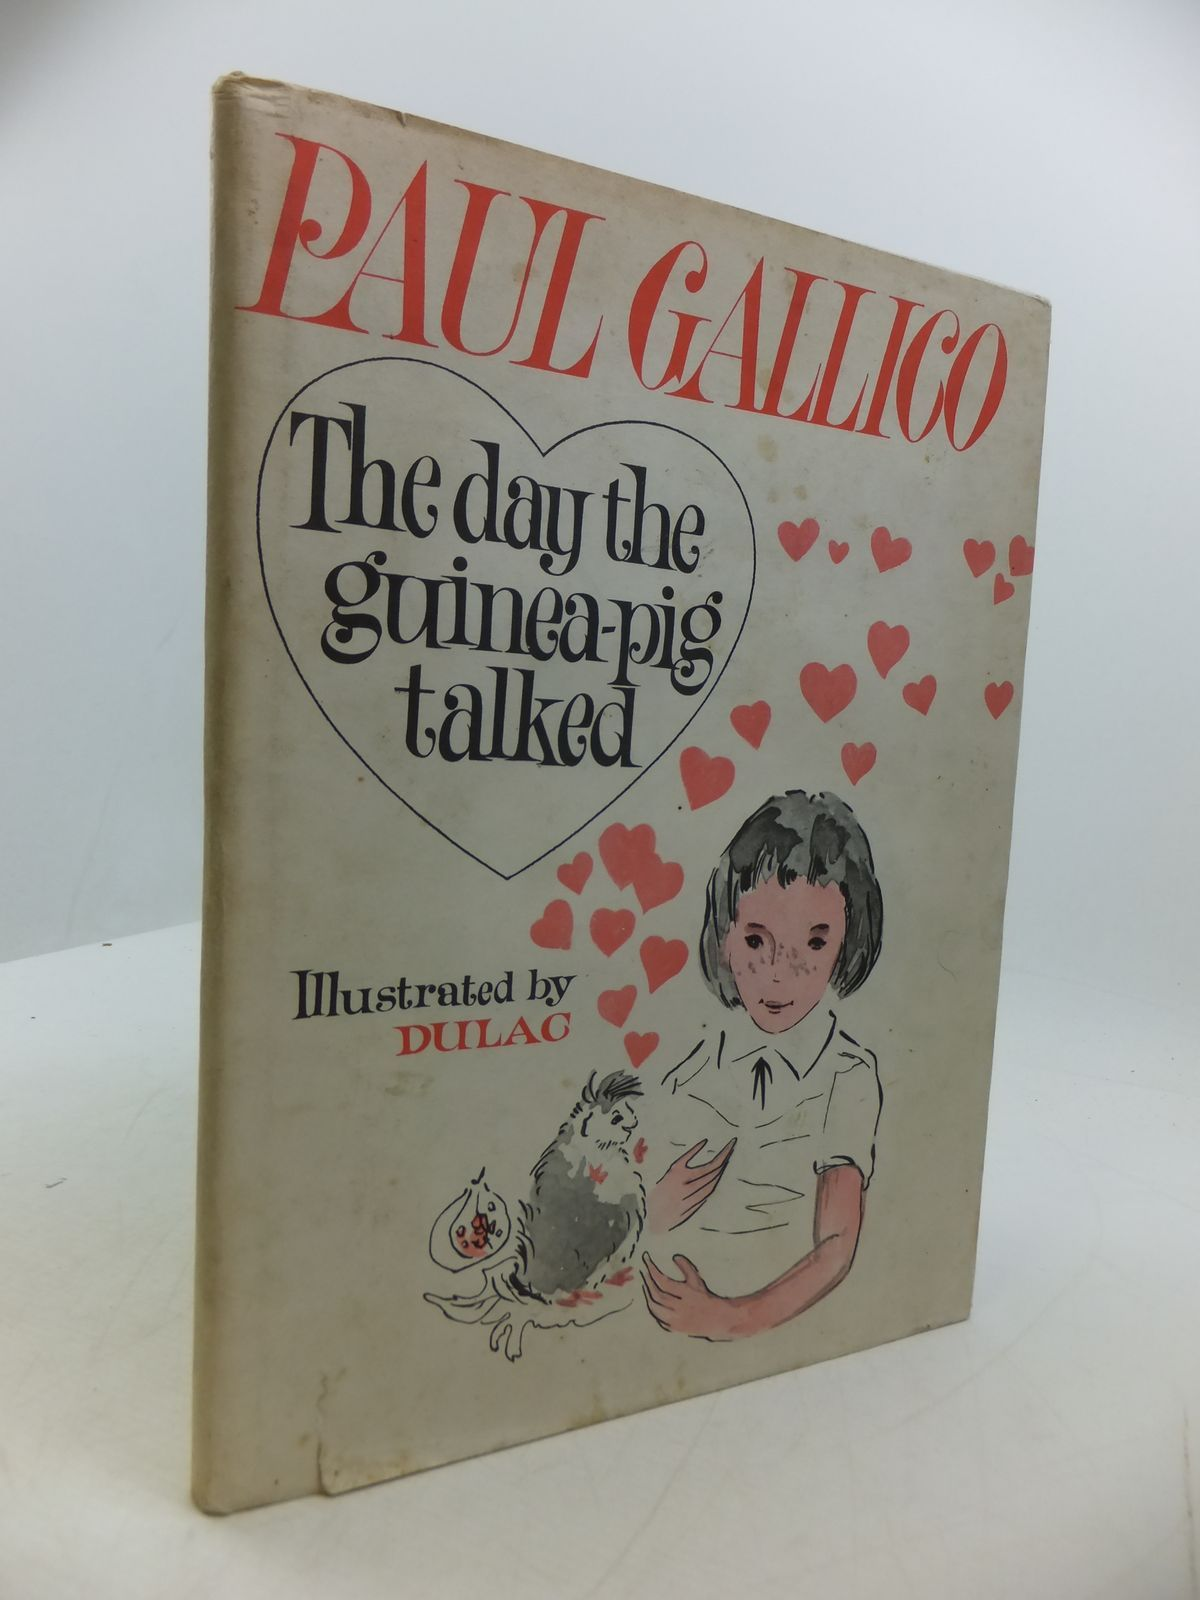 Photo of THE DAY THE GUINEA-PIG TALKED written by Gallico, Paul illustrated by Dulac,  published by Heinemann (STOCK CODE: 1807476)  for sale by Stella & Rose's Books